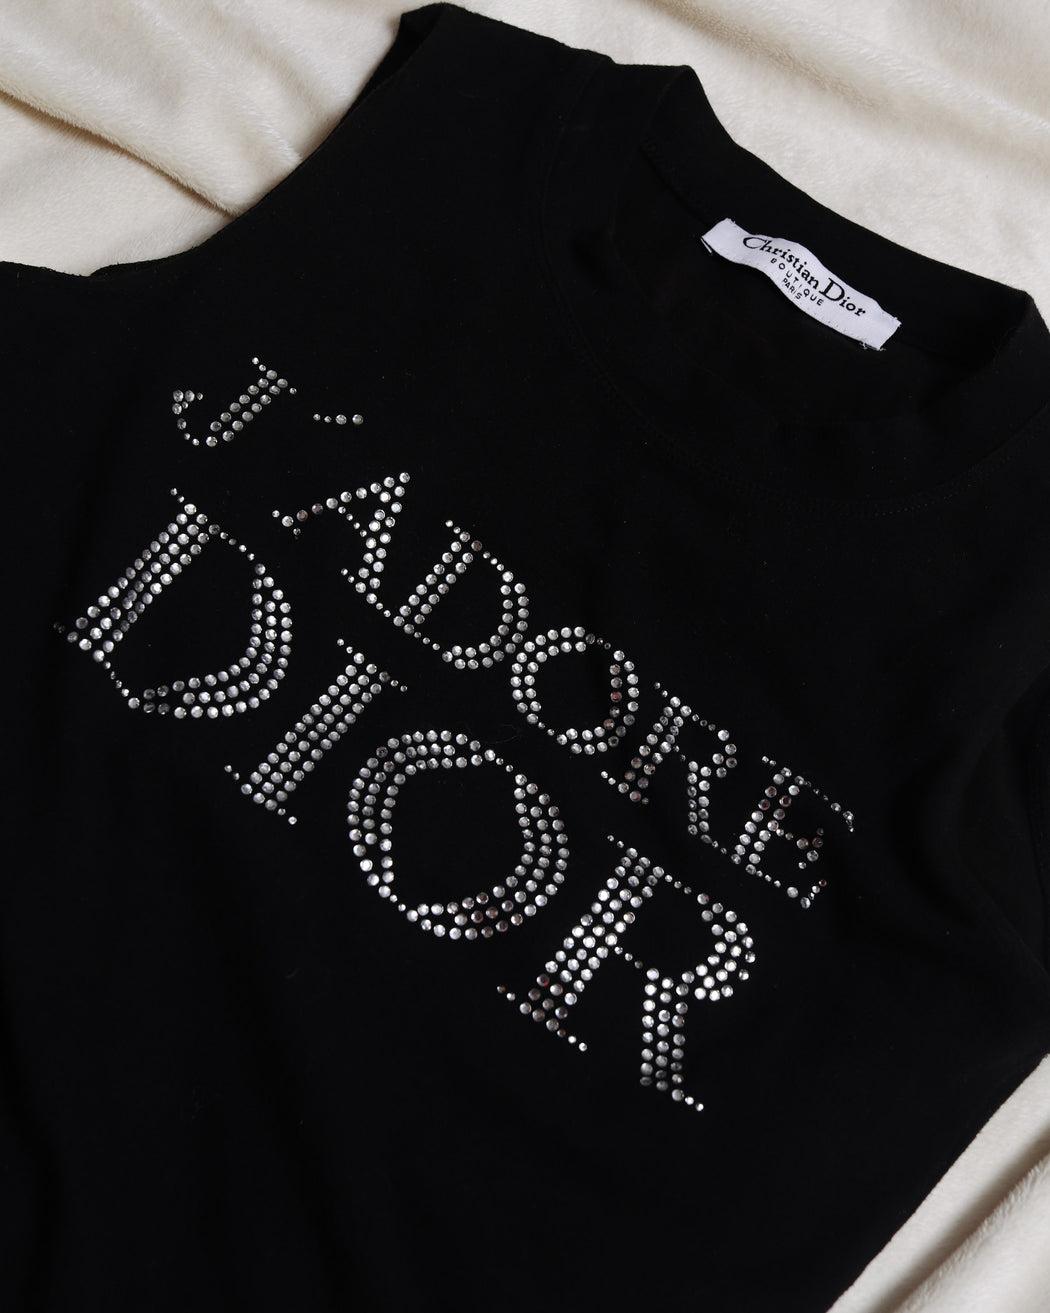 J'adore Dior Diamante Tank Top